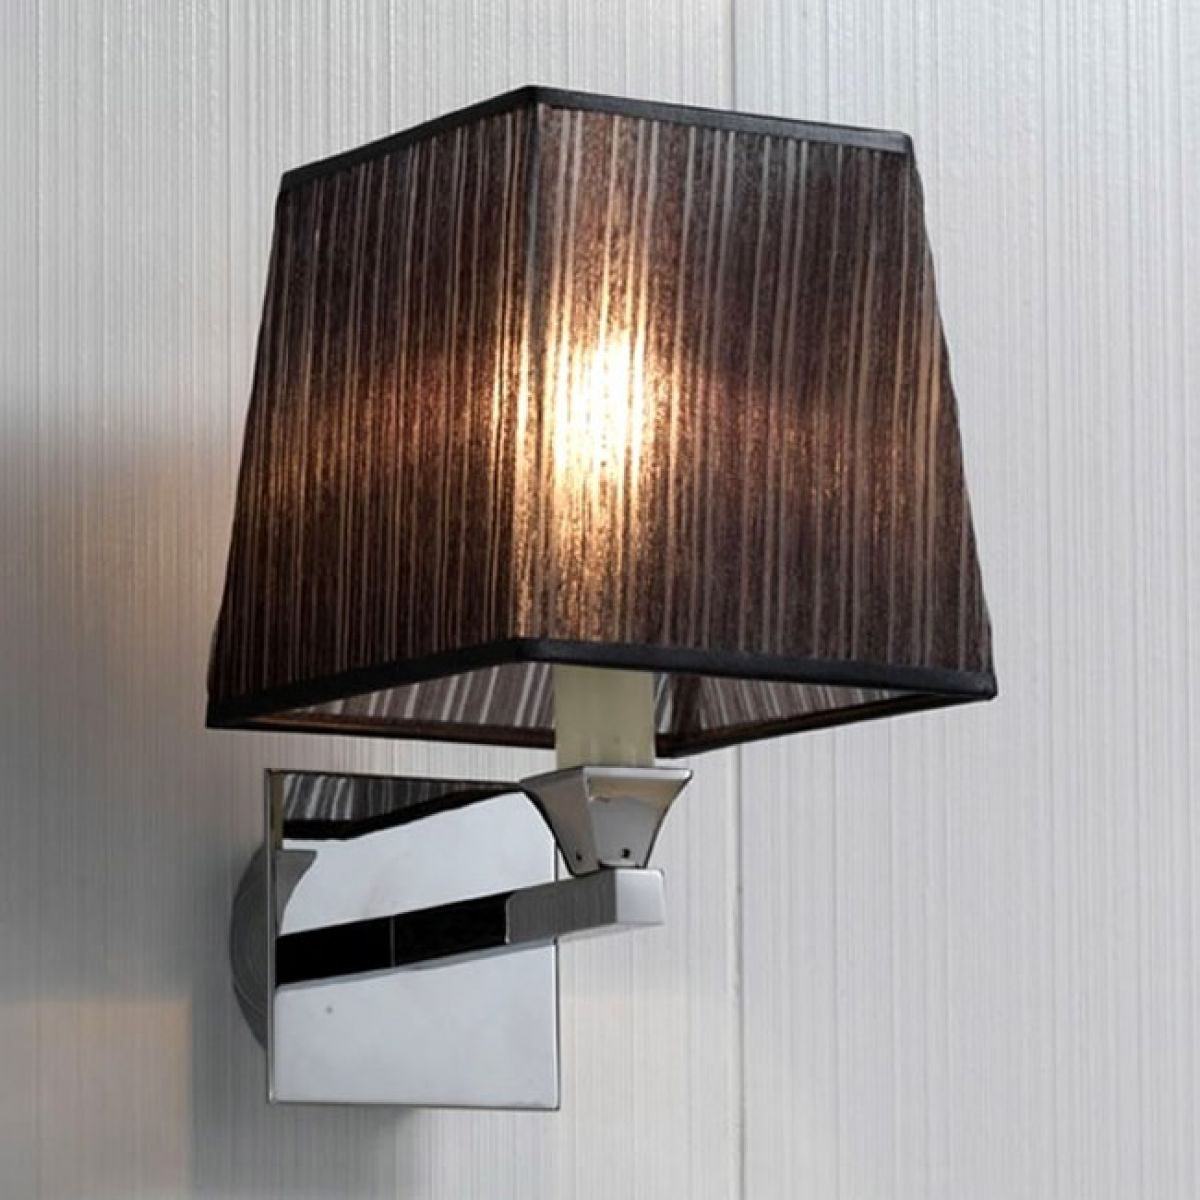 Imperial Astoria Wall Lamp with Fabric Shade : UK Bathrooms